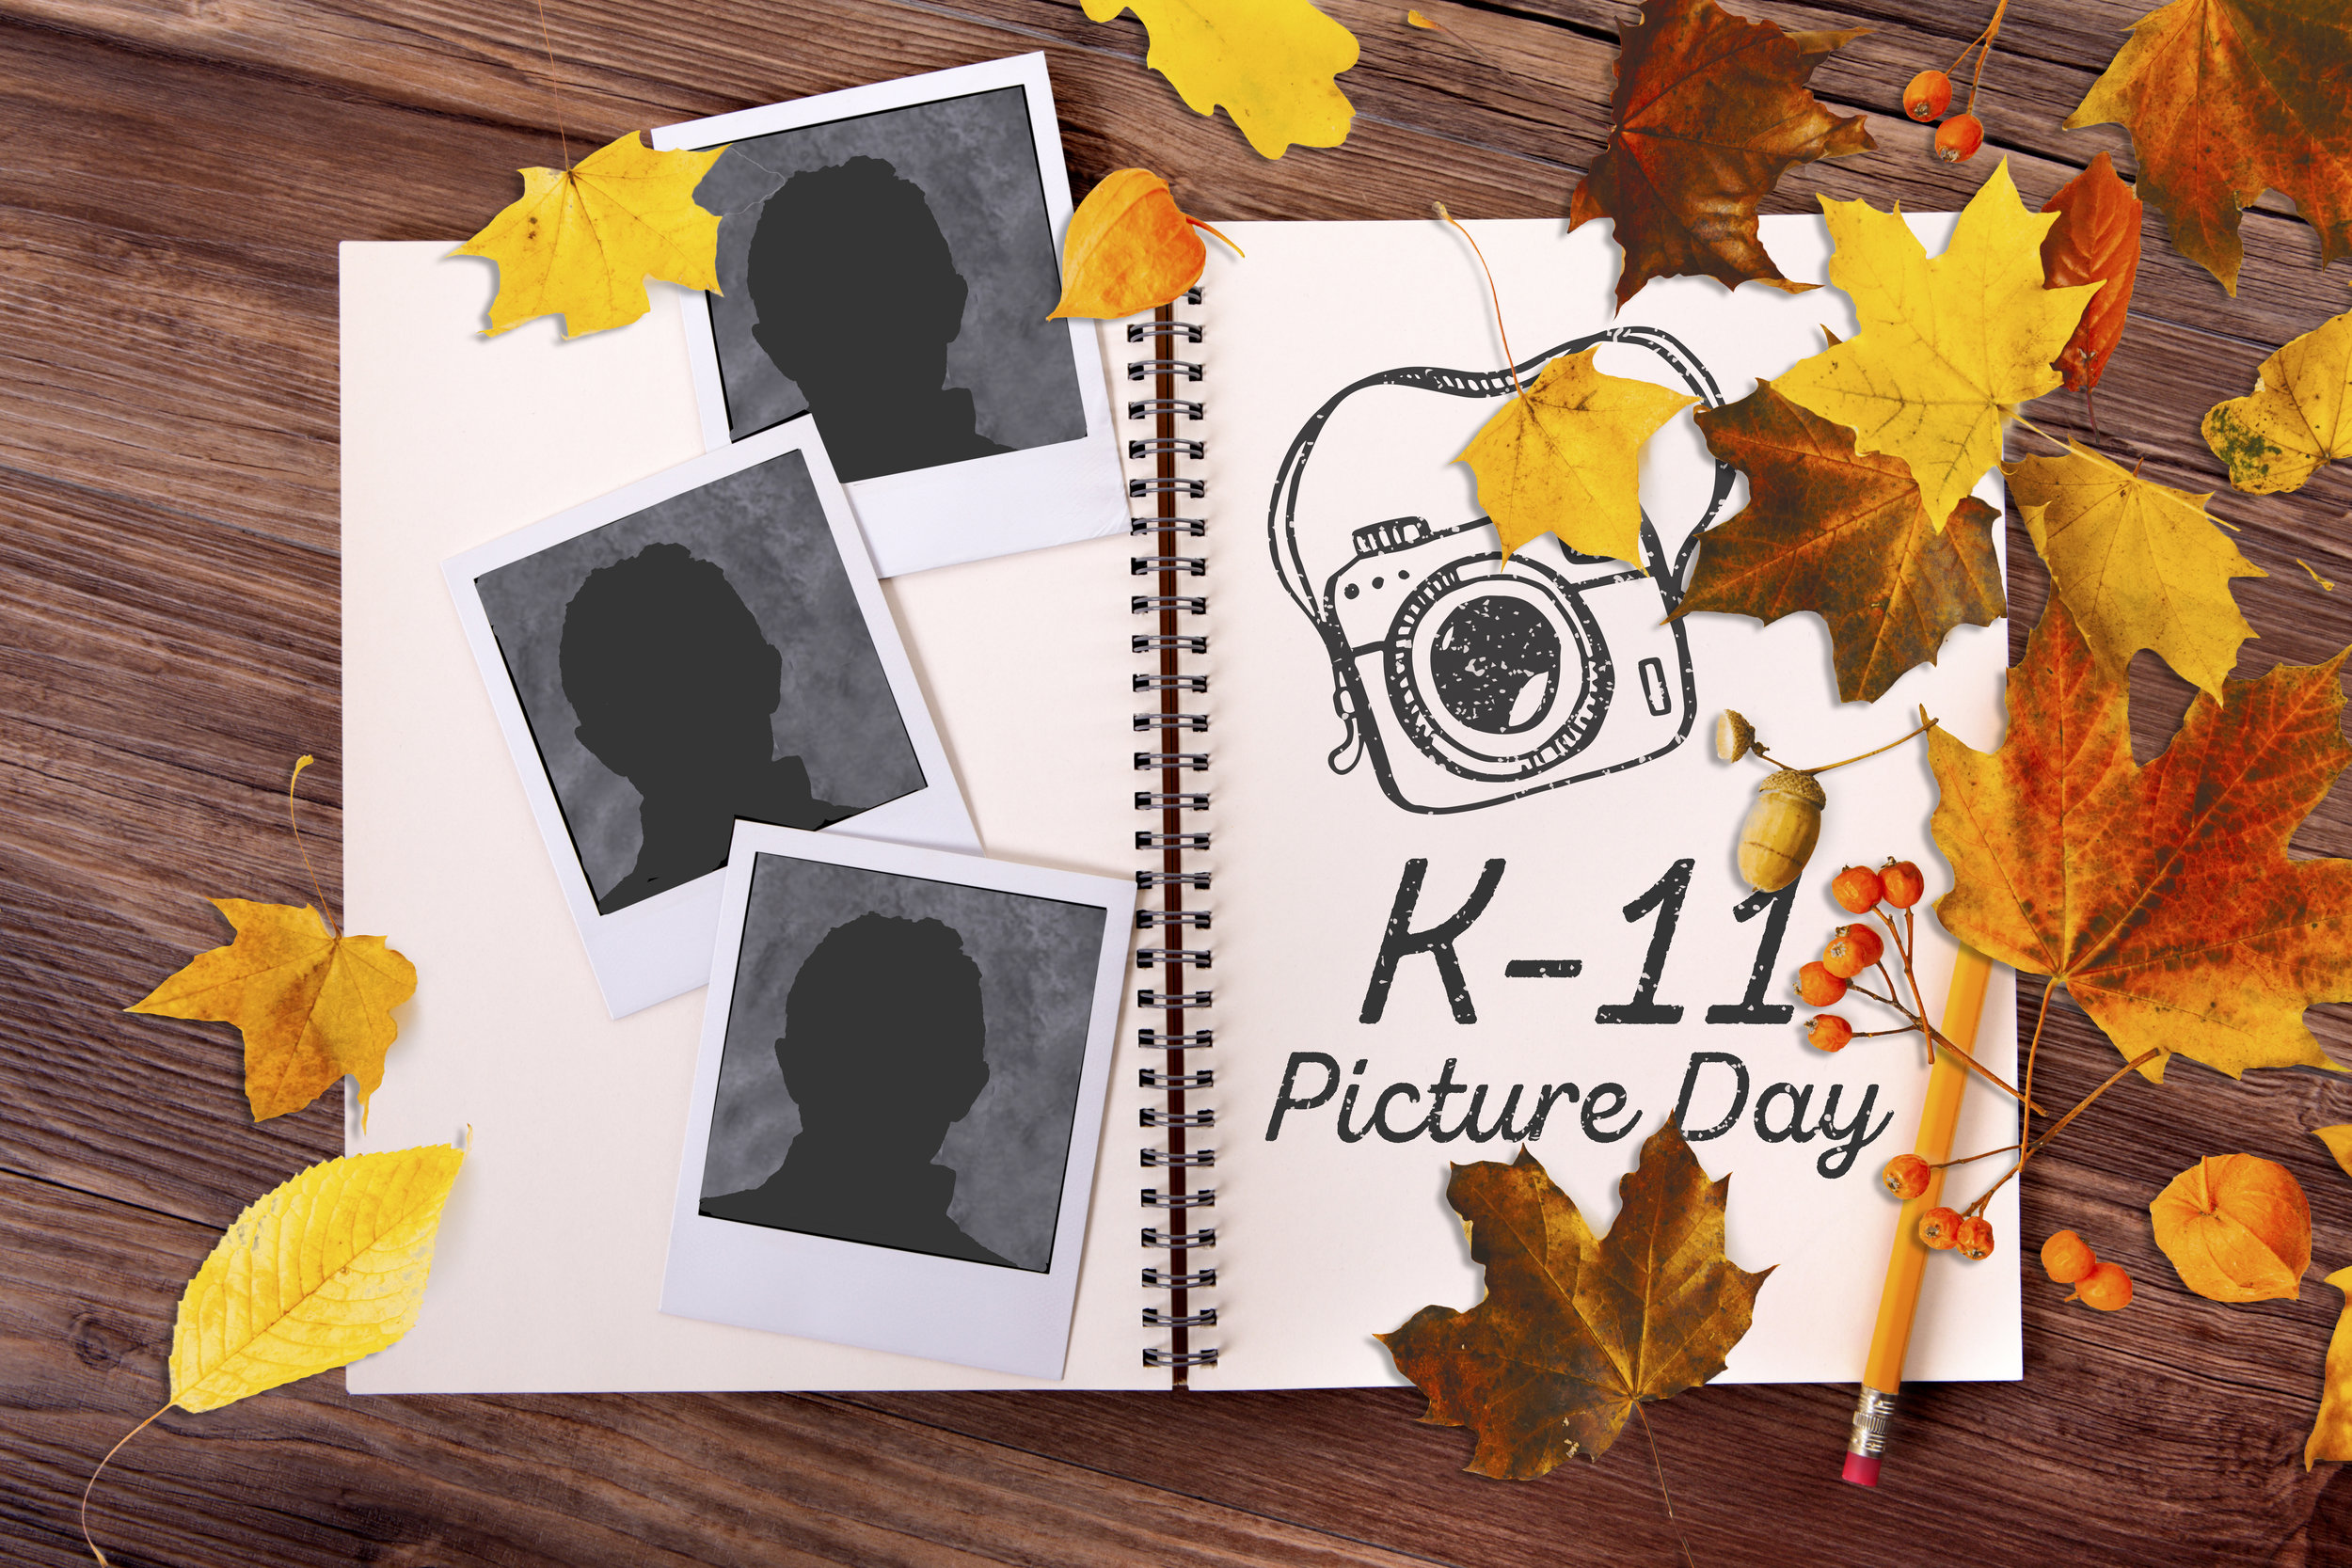 Picture Day_K-11.jpg